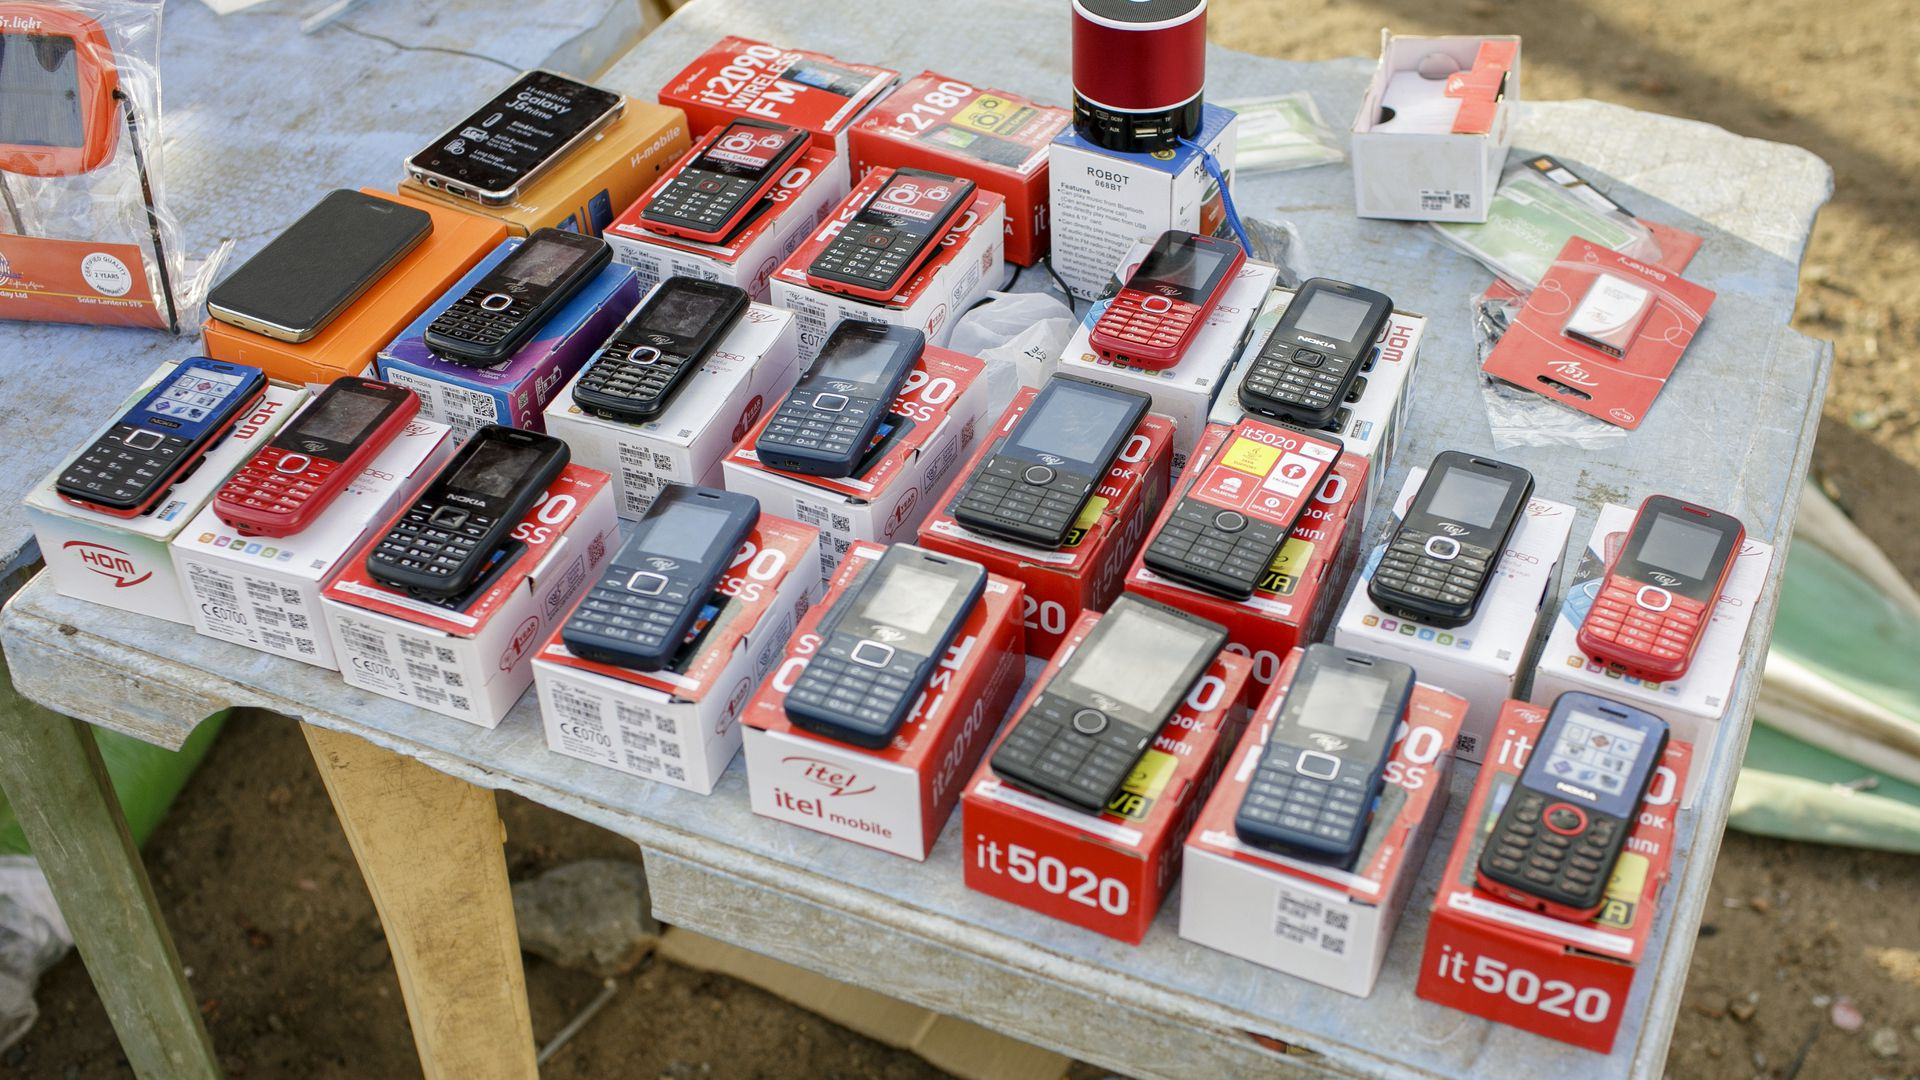 Cell phones placed on a table, street trade in Talek on May 17, 2017 in Talek, Kenya.